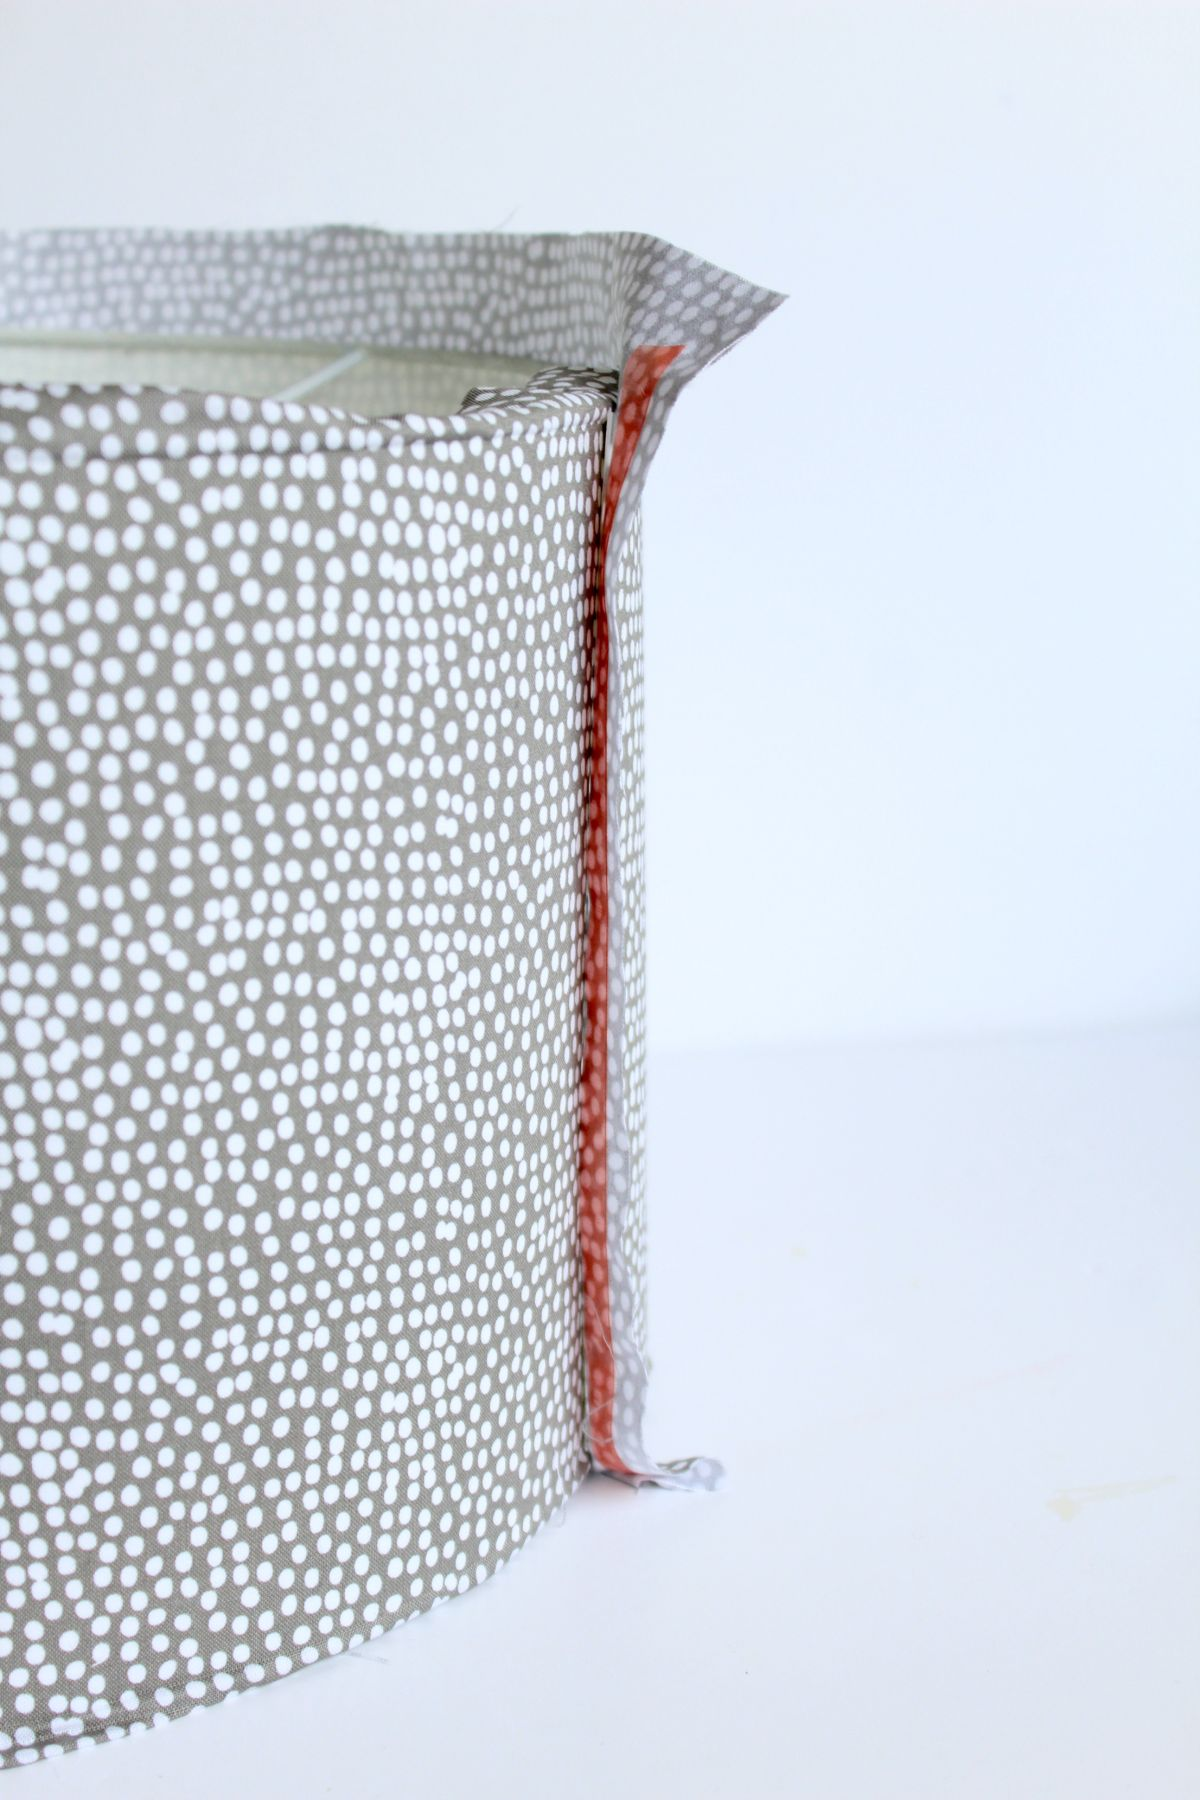 Lampshade formed from fabric